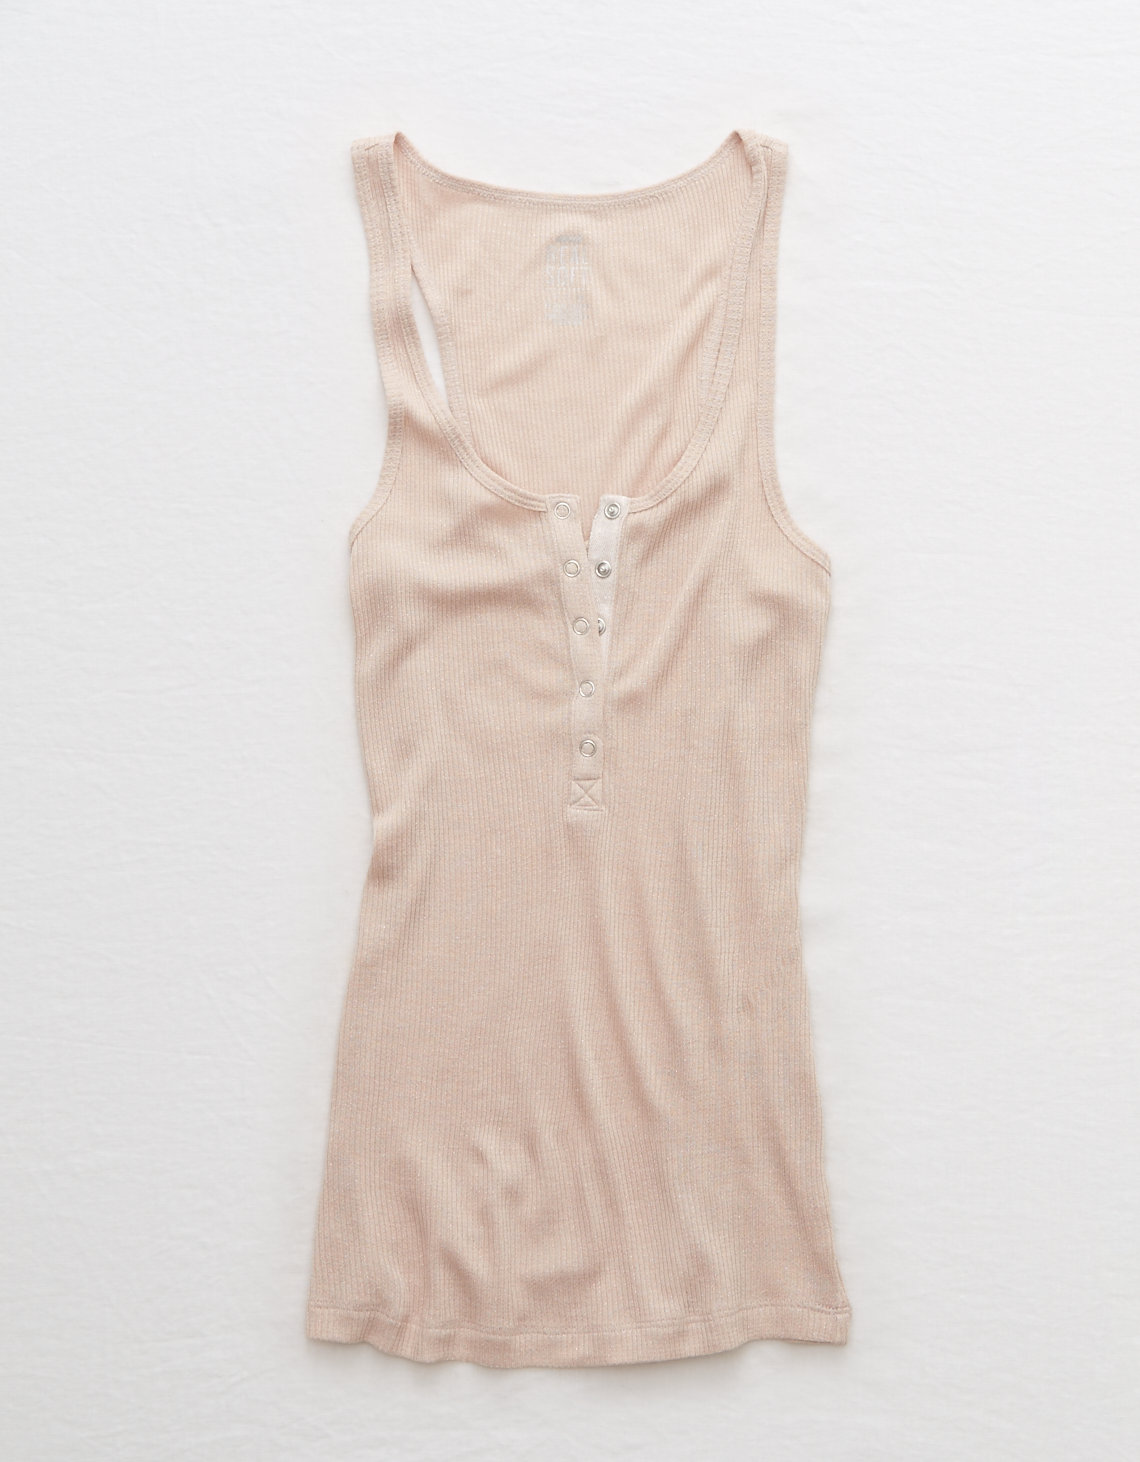 Aerie Real Soft? Shine Tank